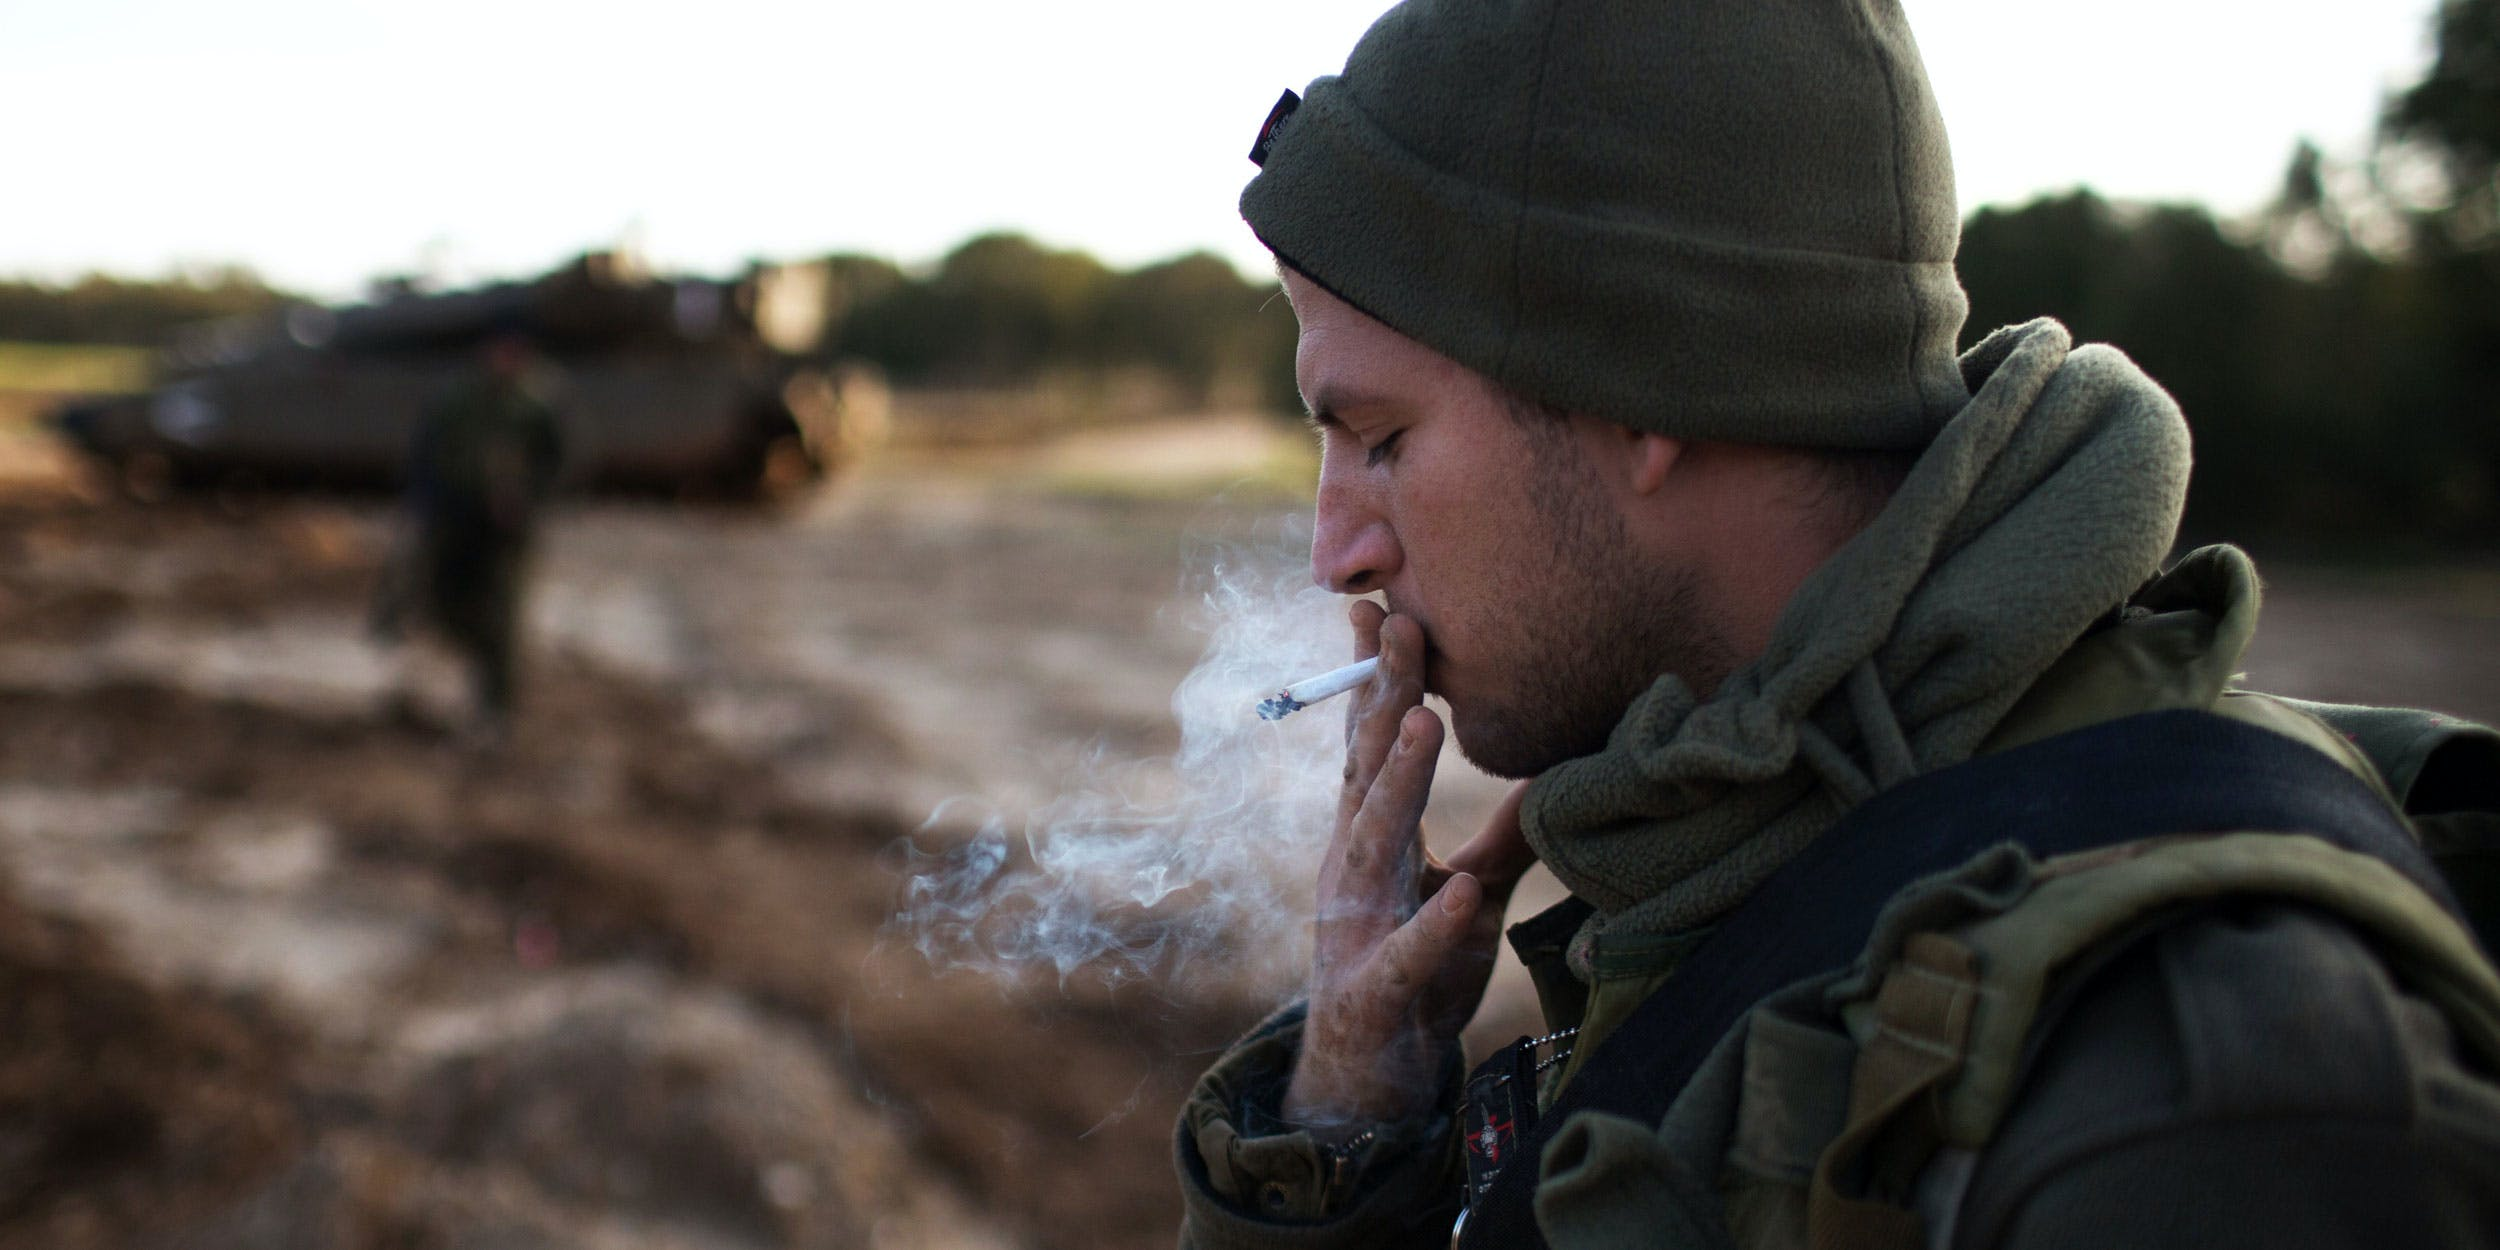 An Israeli soldier smokes a cigarette next to his Merkava tank positioned along the southern border with the Gaza Strip on December 25, 2013. Many Israelis smoke cannabis to cope with the trauma of growing up in a war torn country. (Photo by Mehahem Kahana/AFP/Getty Images)